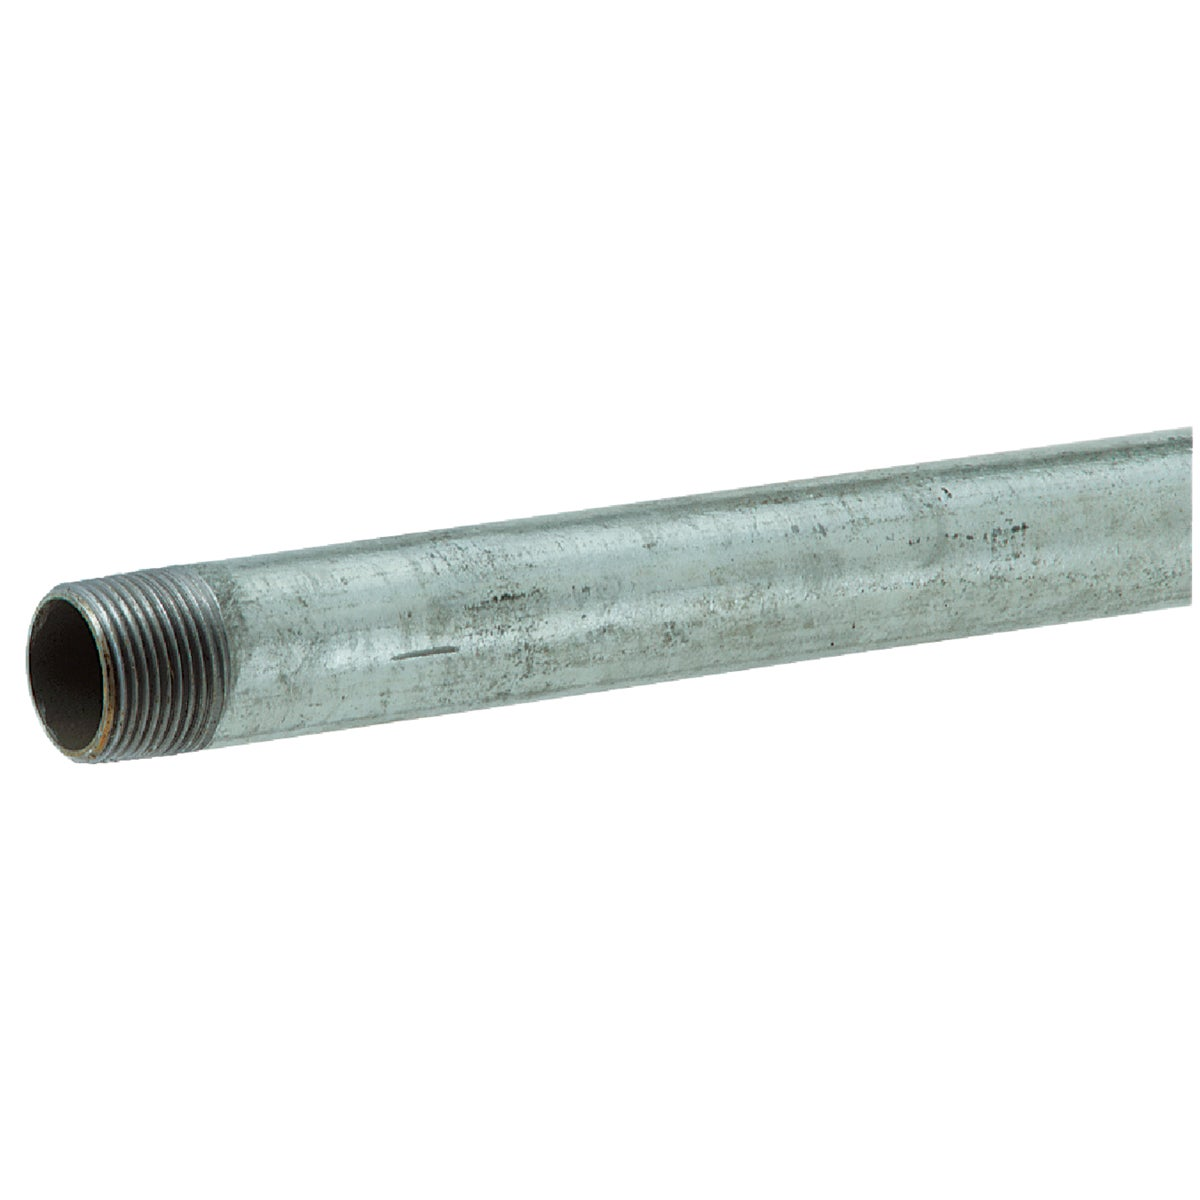 1X48 GALV RDI-CT PIPE